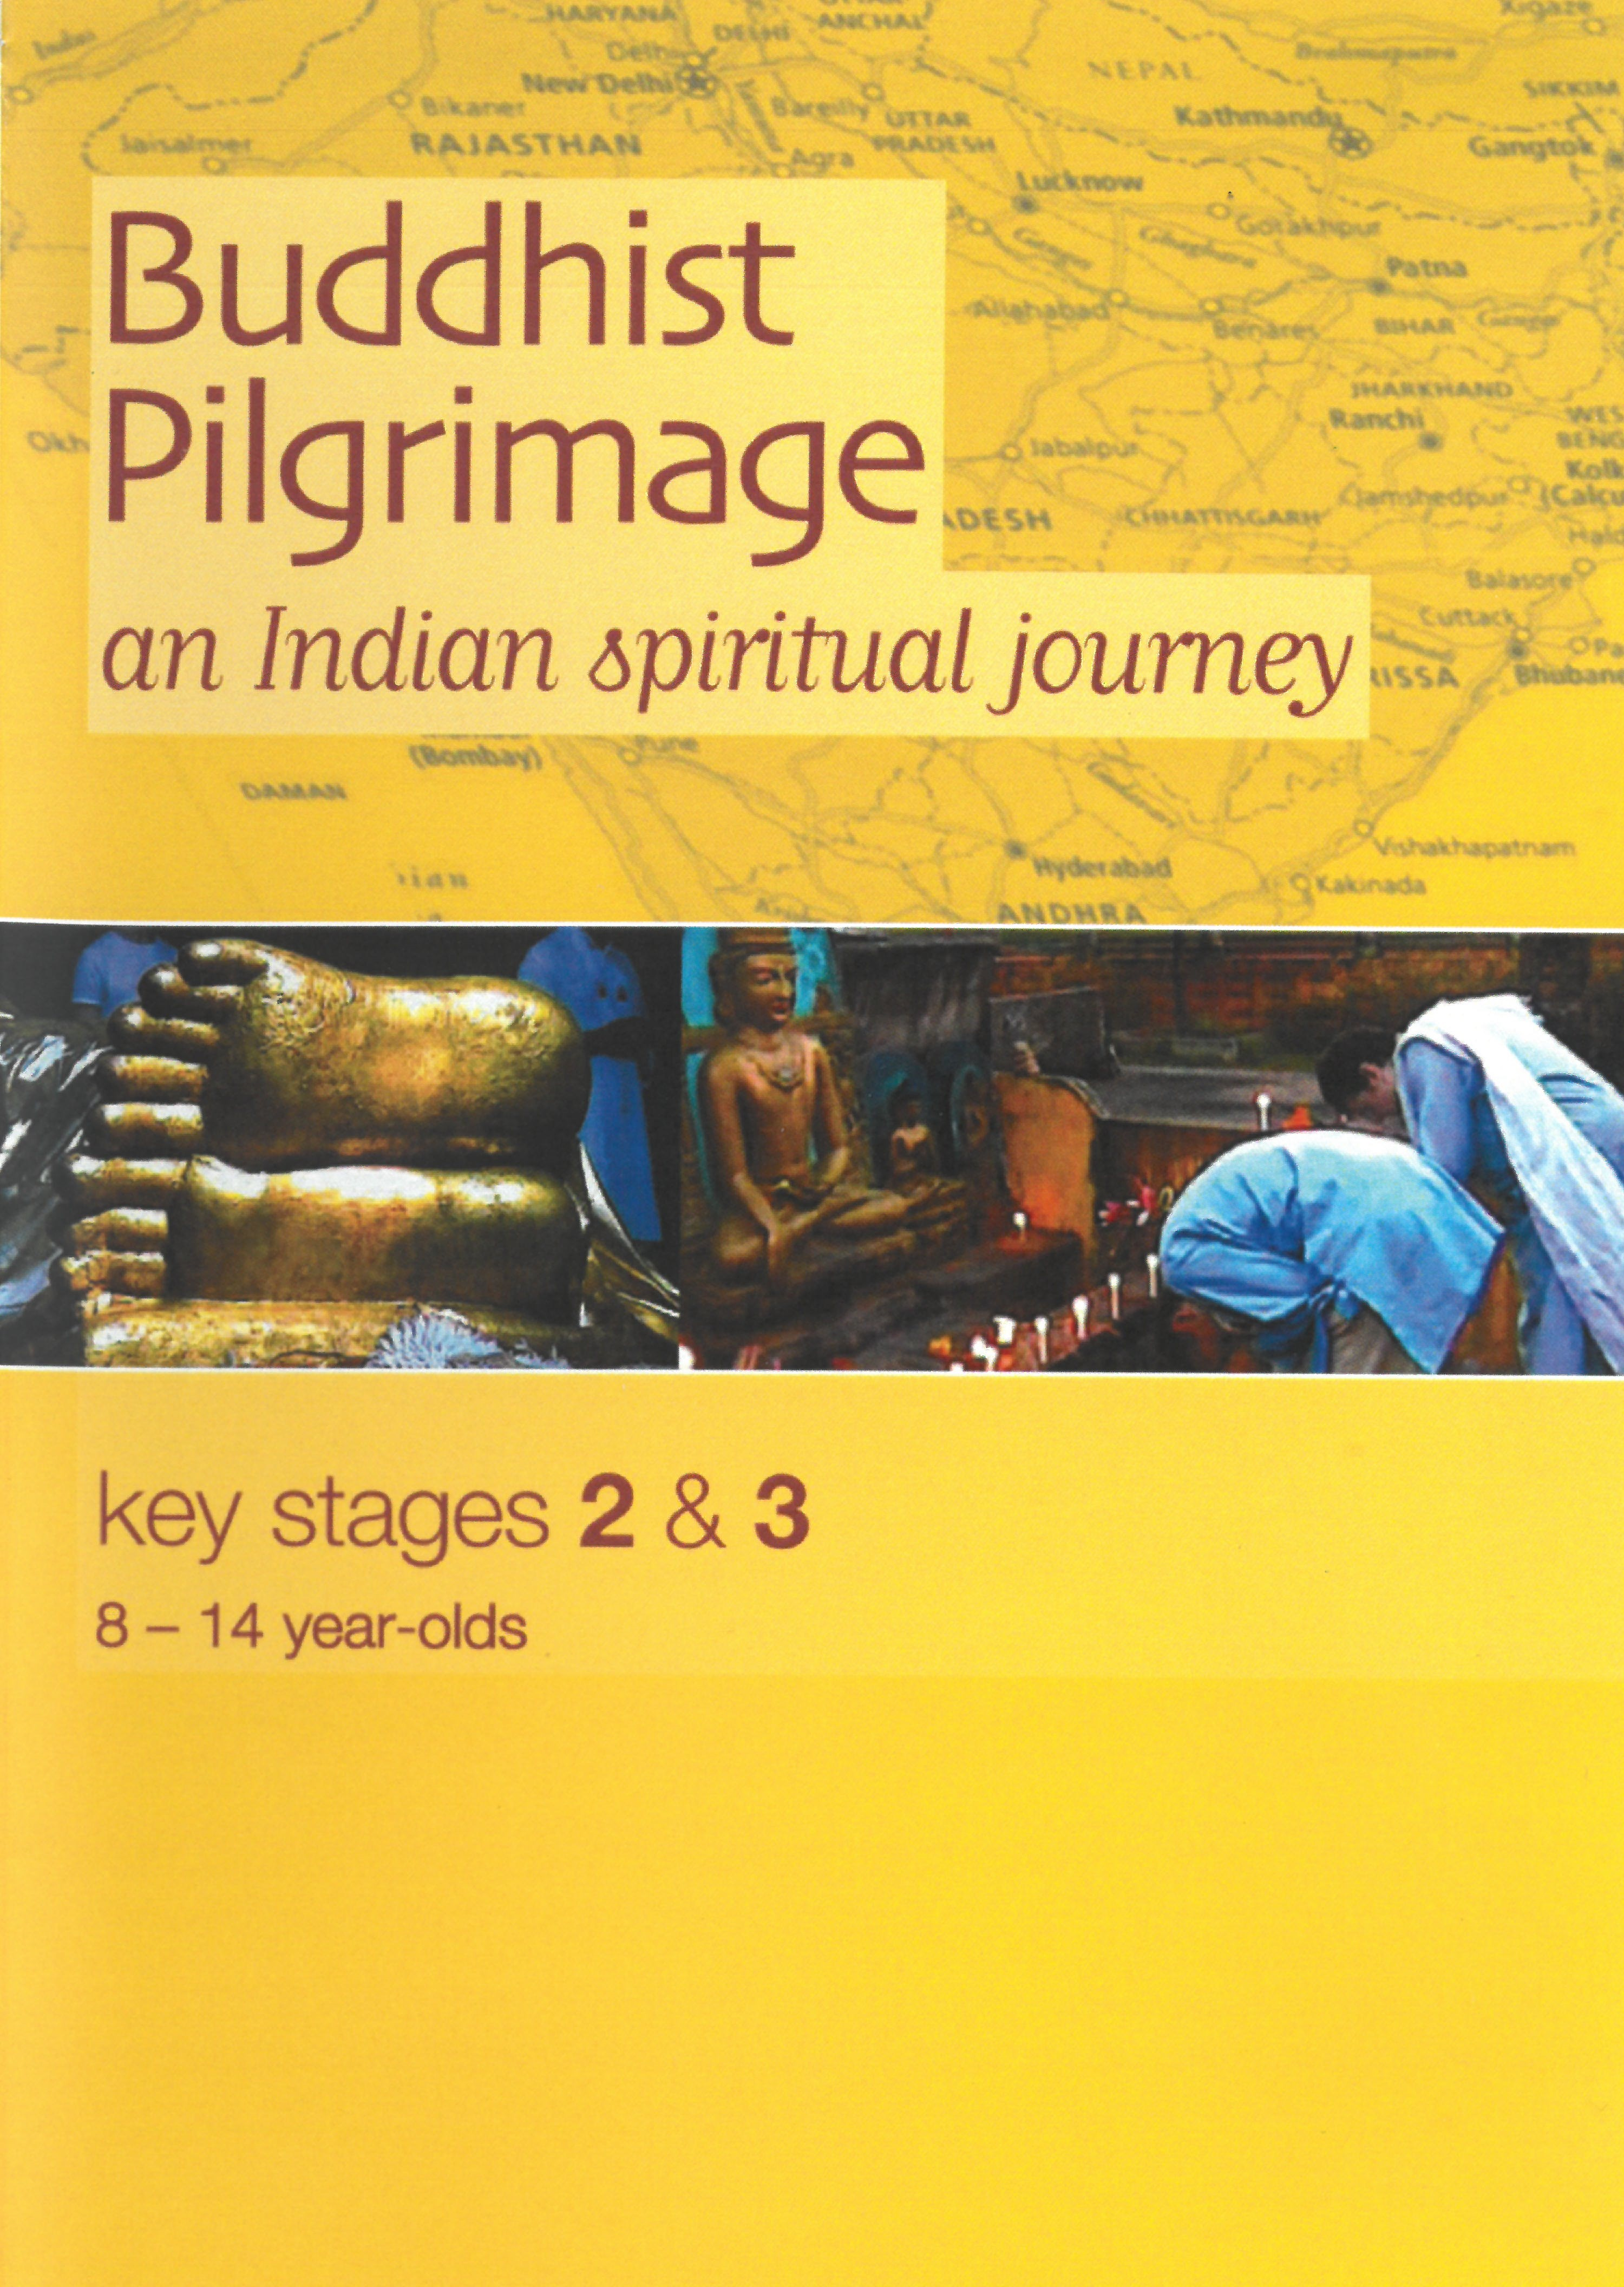 More information on Buddhist Pilgrimage: an Indian Spiritual Journey